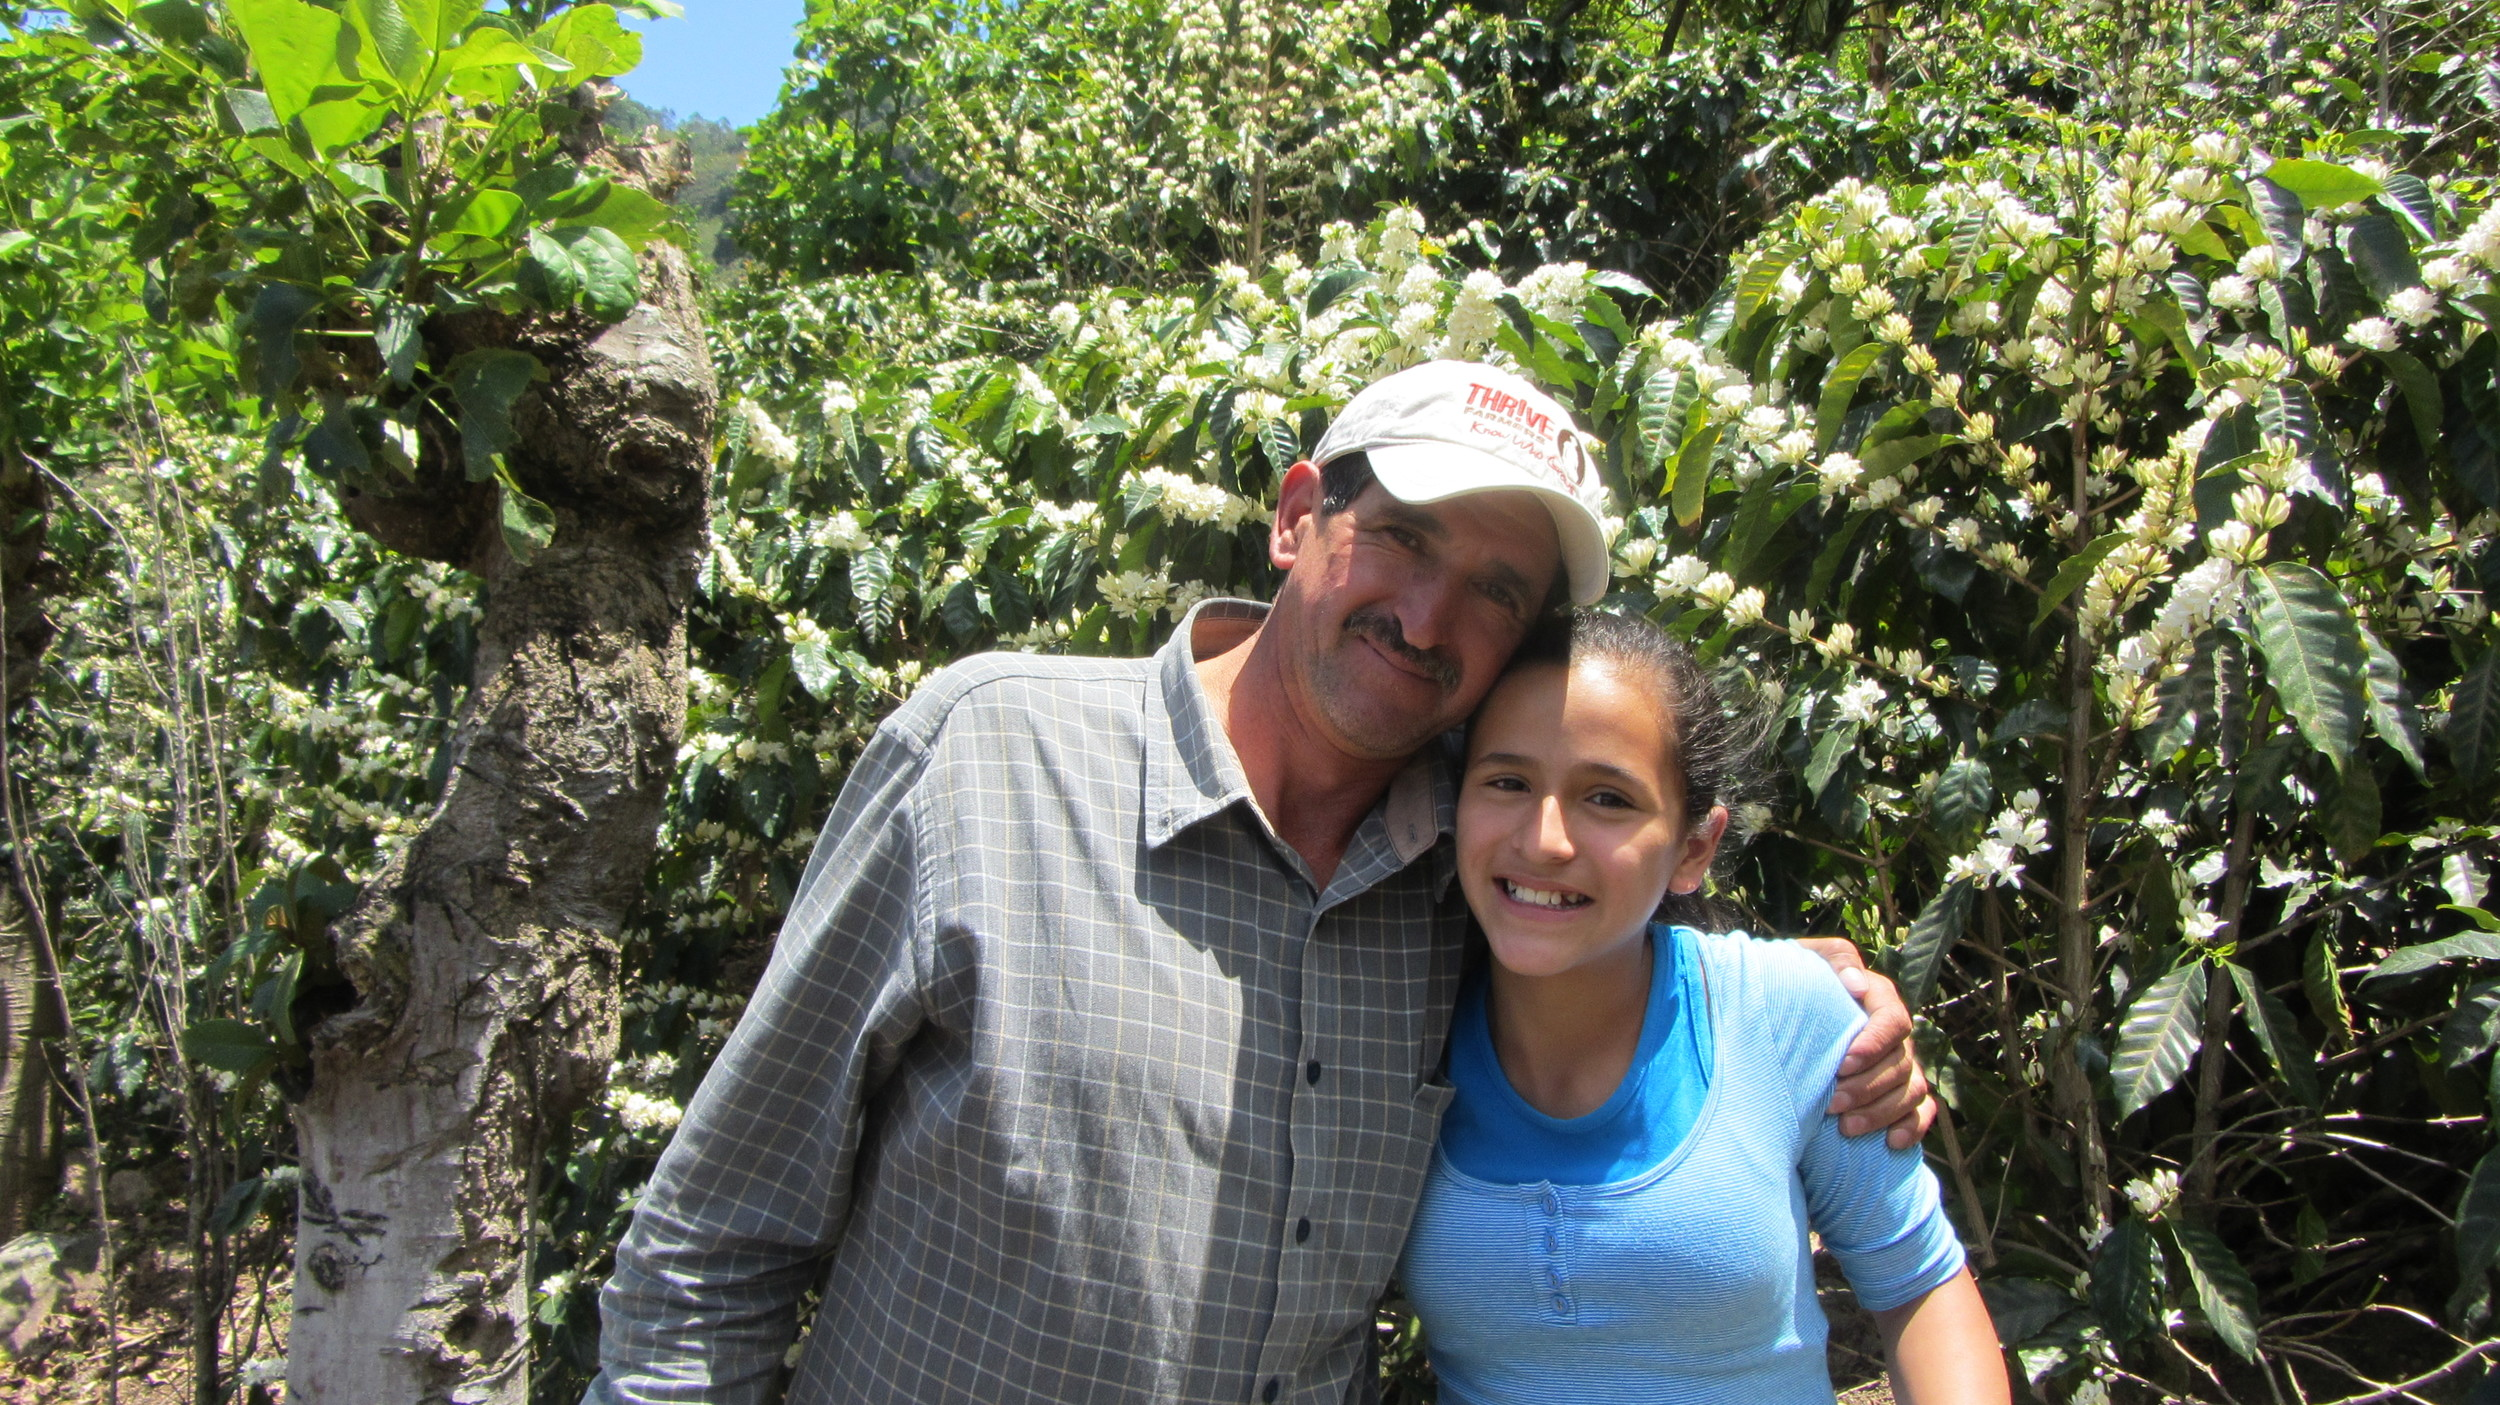 Don Franco and his daughter at their farm